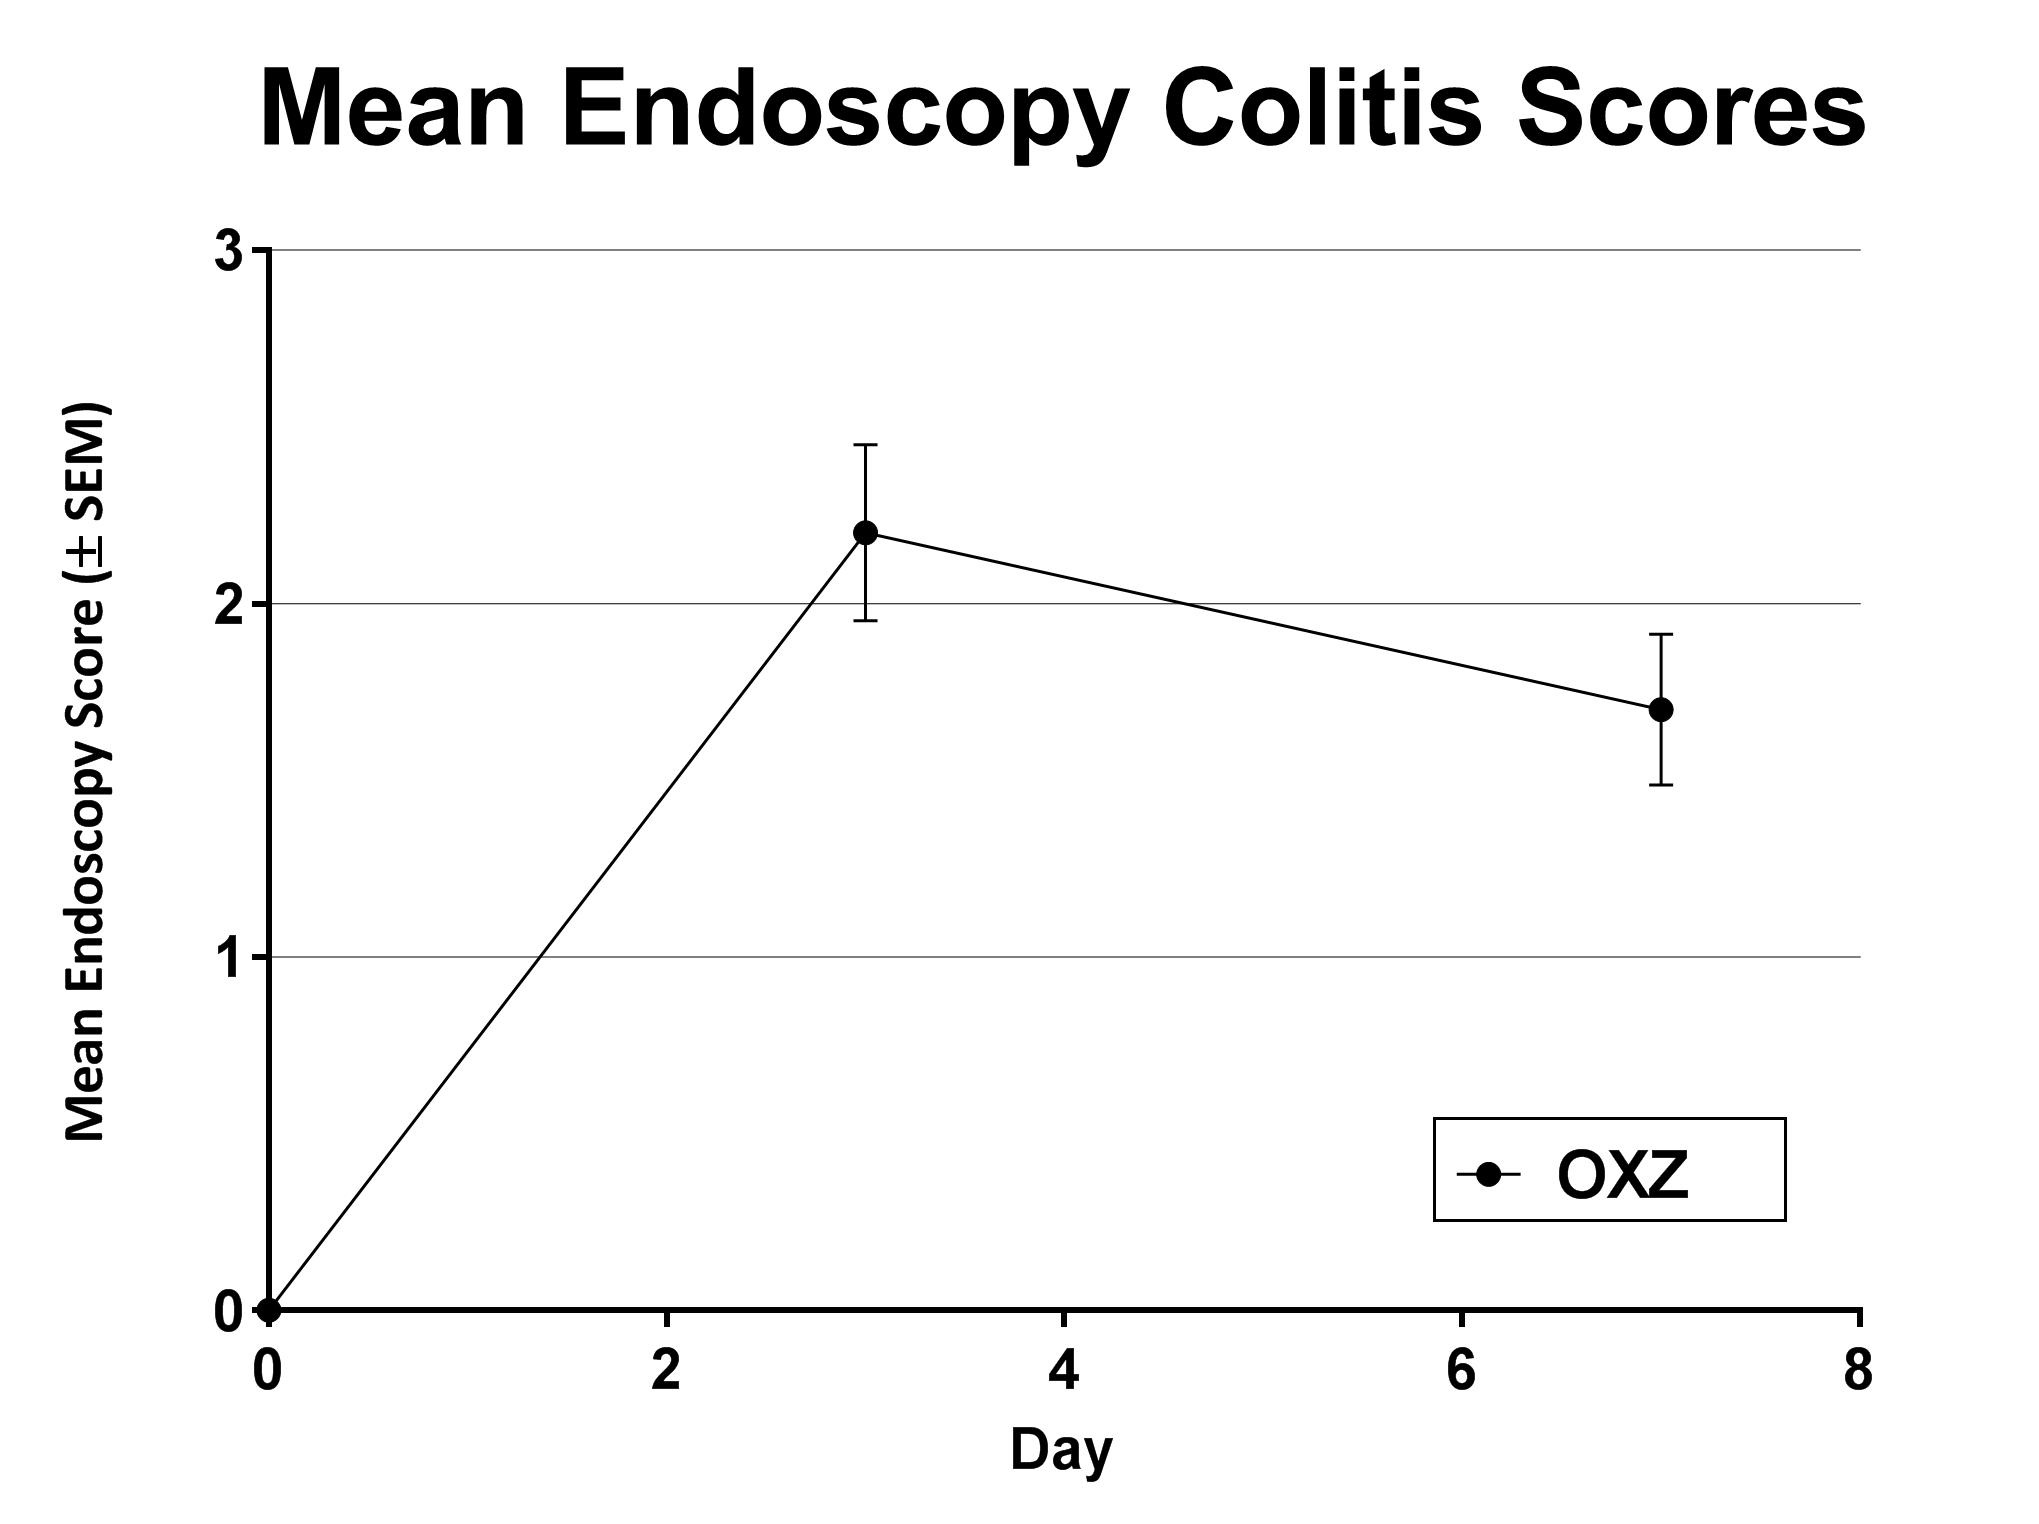 Endoscopy colitis severity scores resulting from acute OXZ exposure